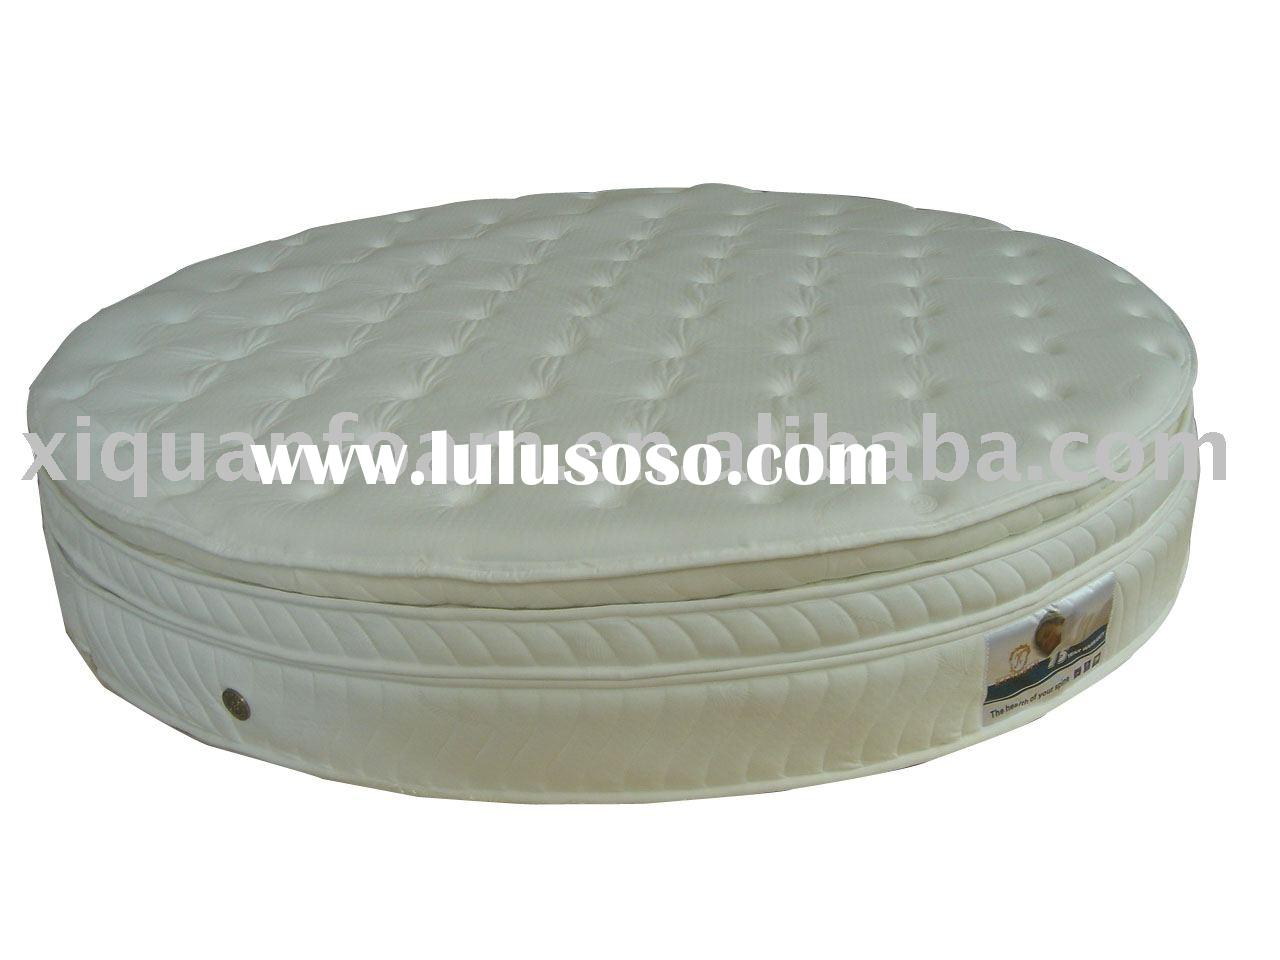 Round Bed Mattress Ikea images